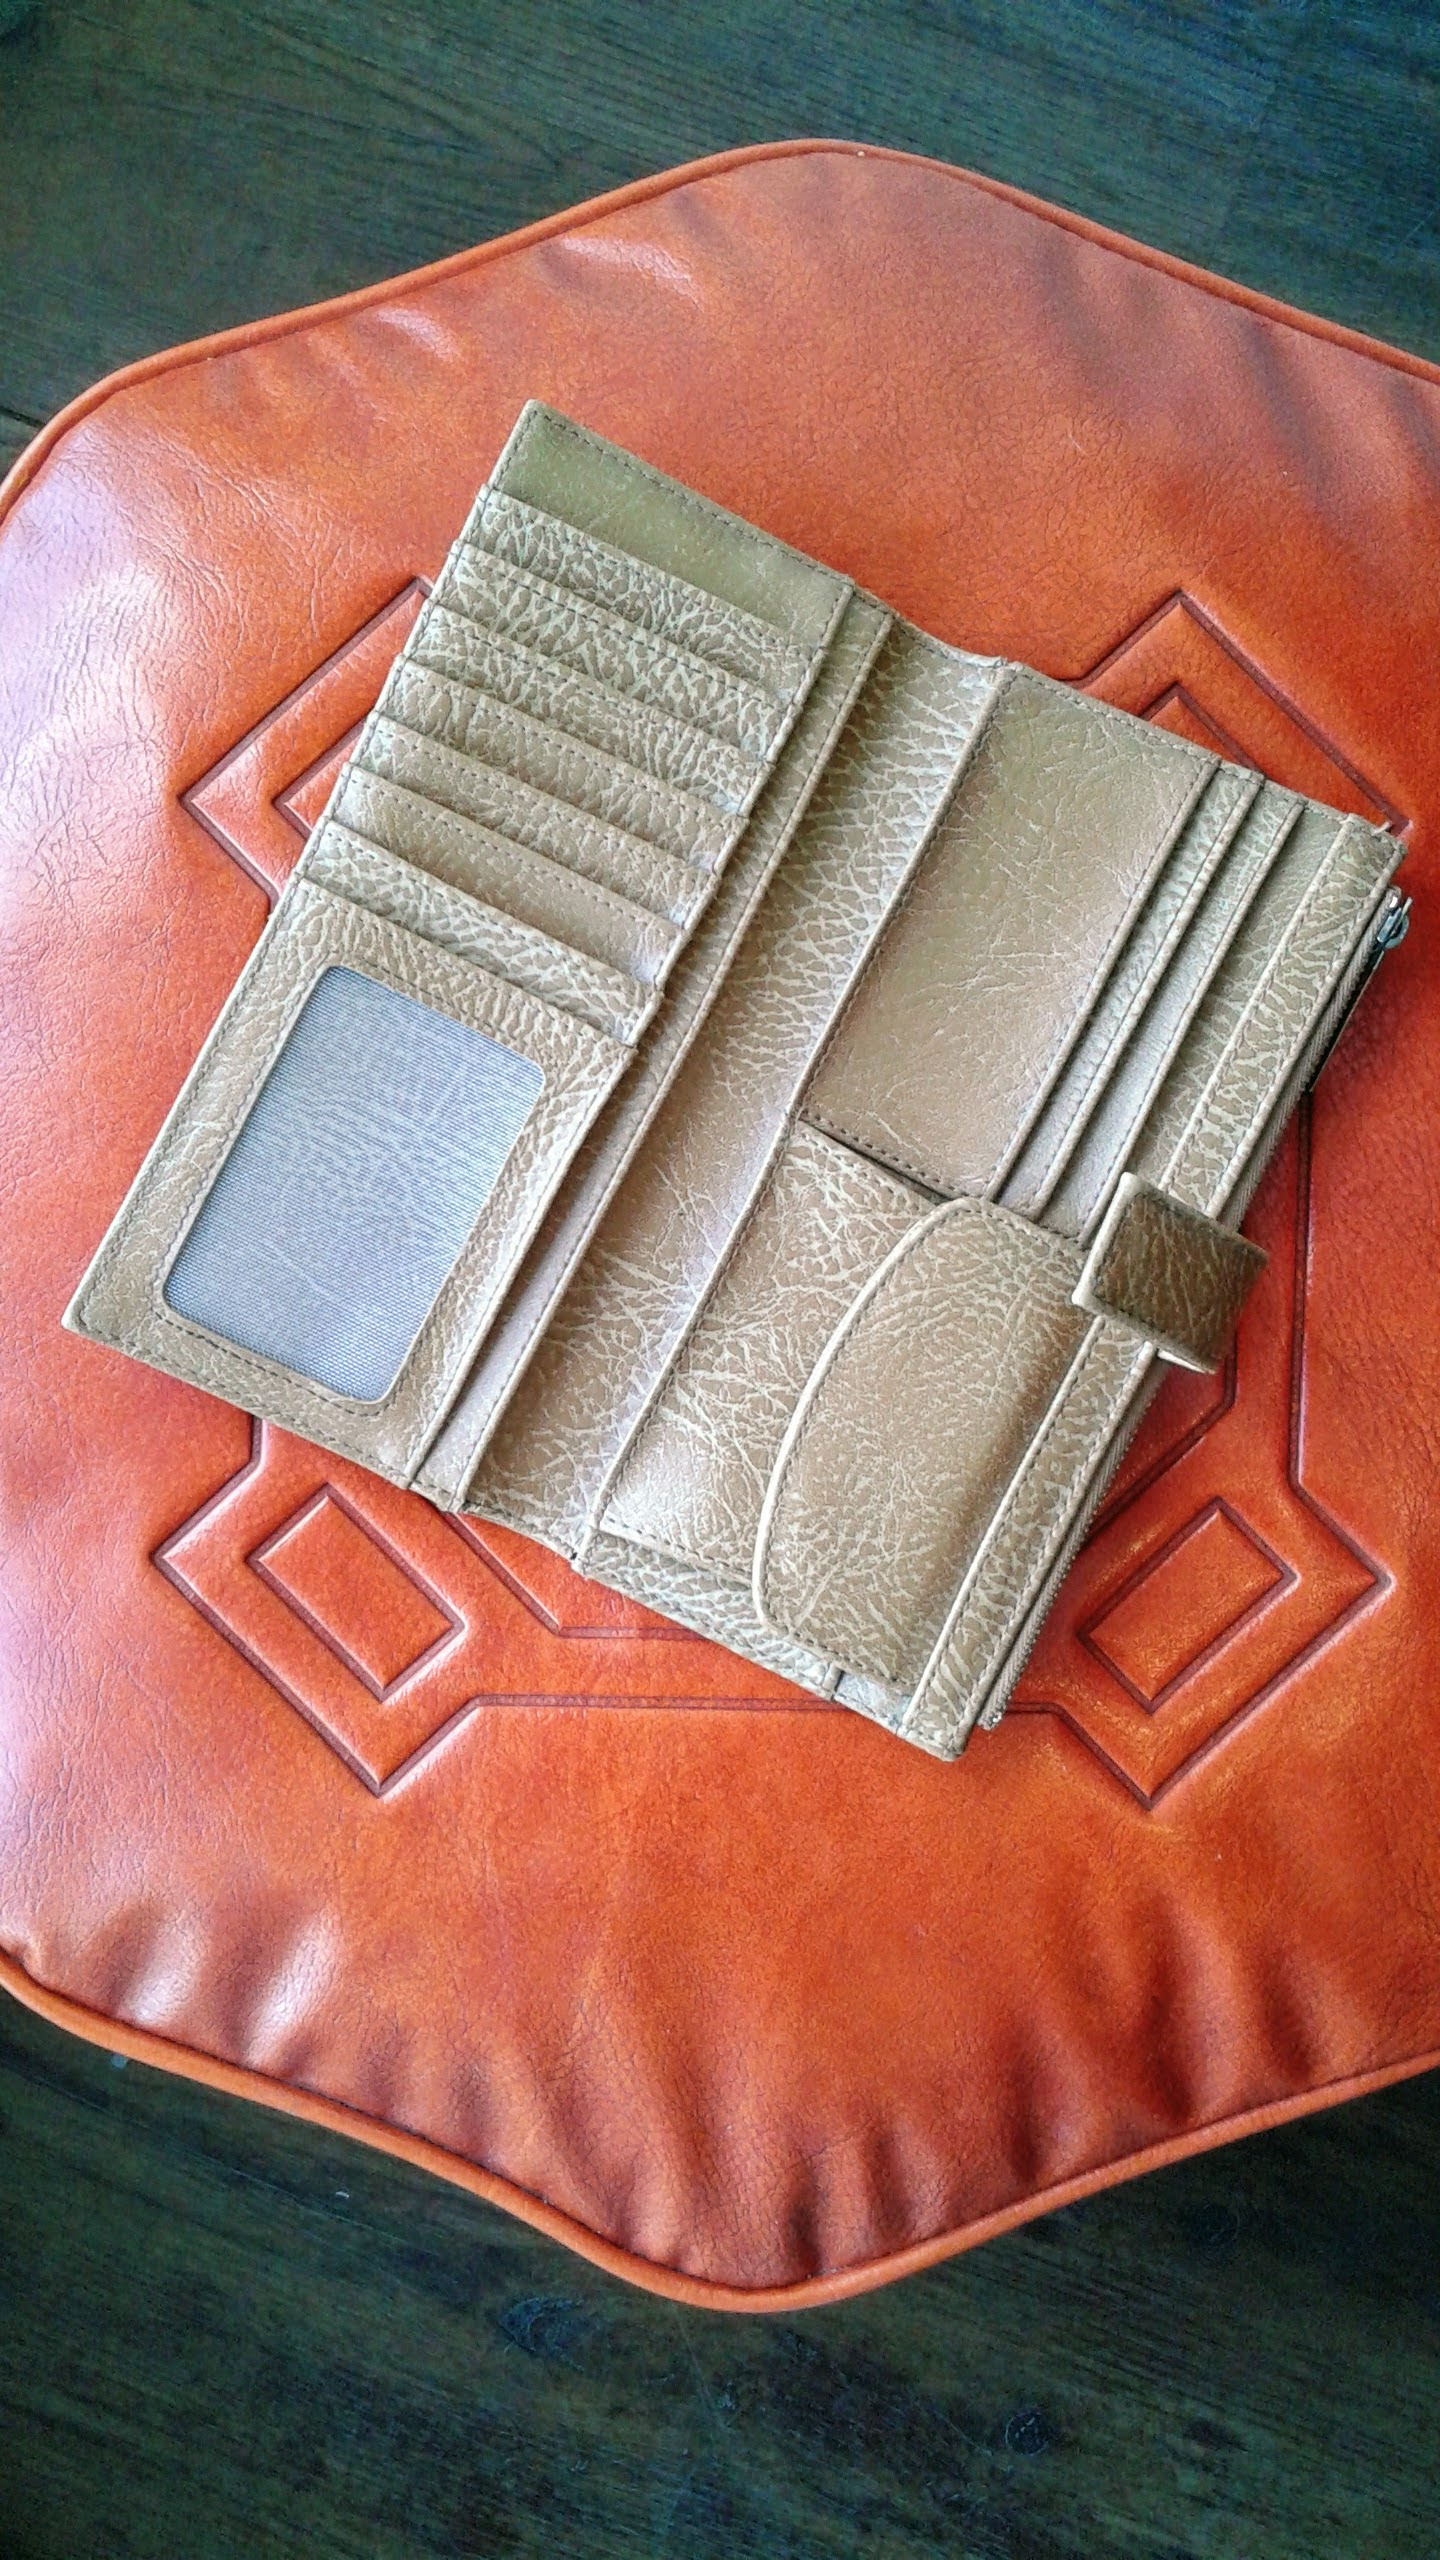 Matt + Nat wallet, $28